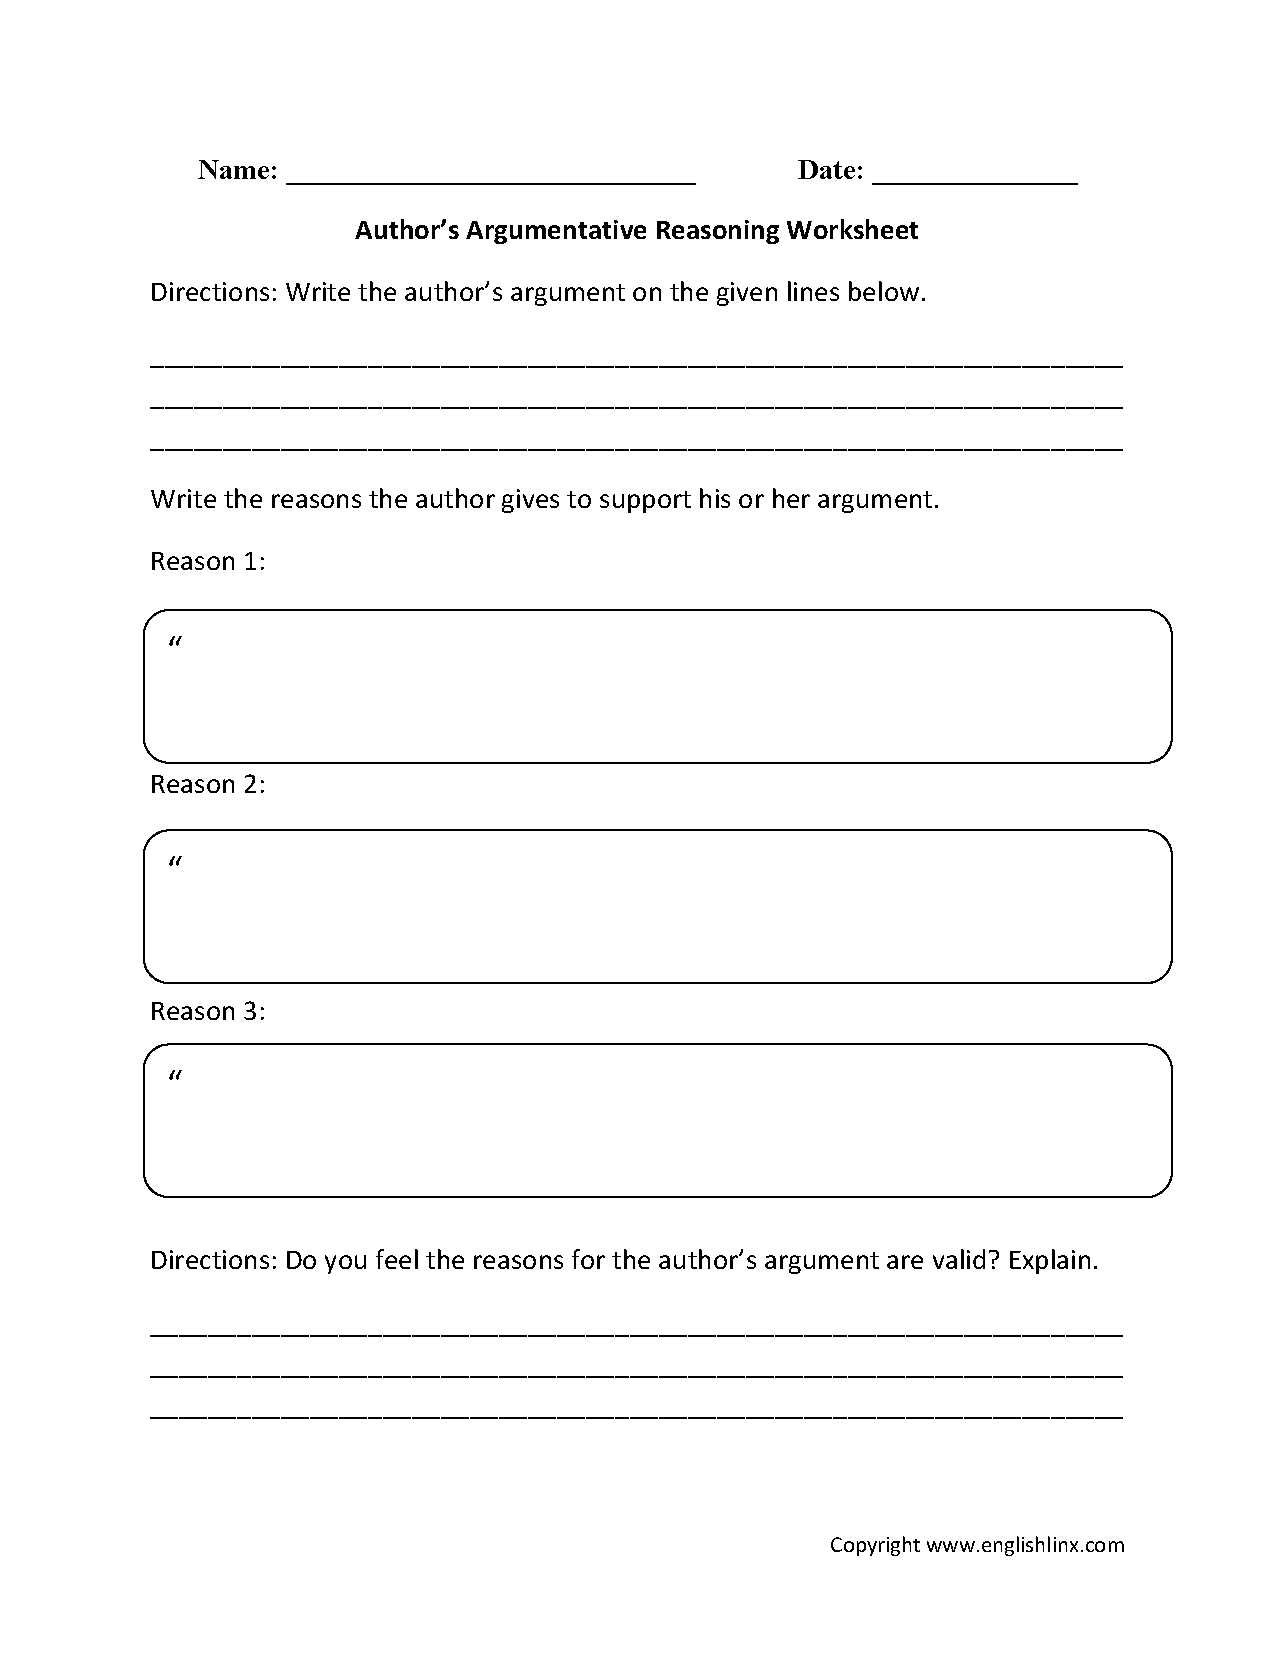 Worksheets Reading Comprehension Worksheets 11th Grade reading comprehension worksheets authors argumentative worksheets